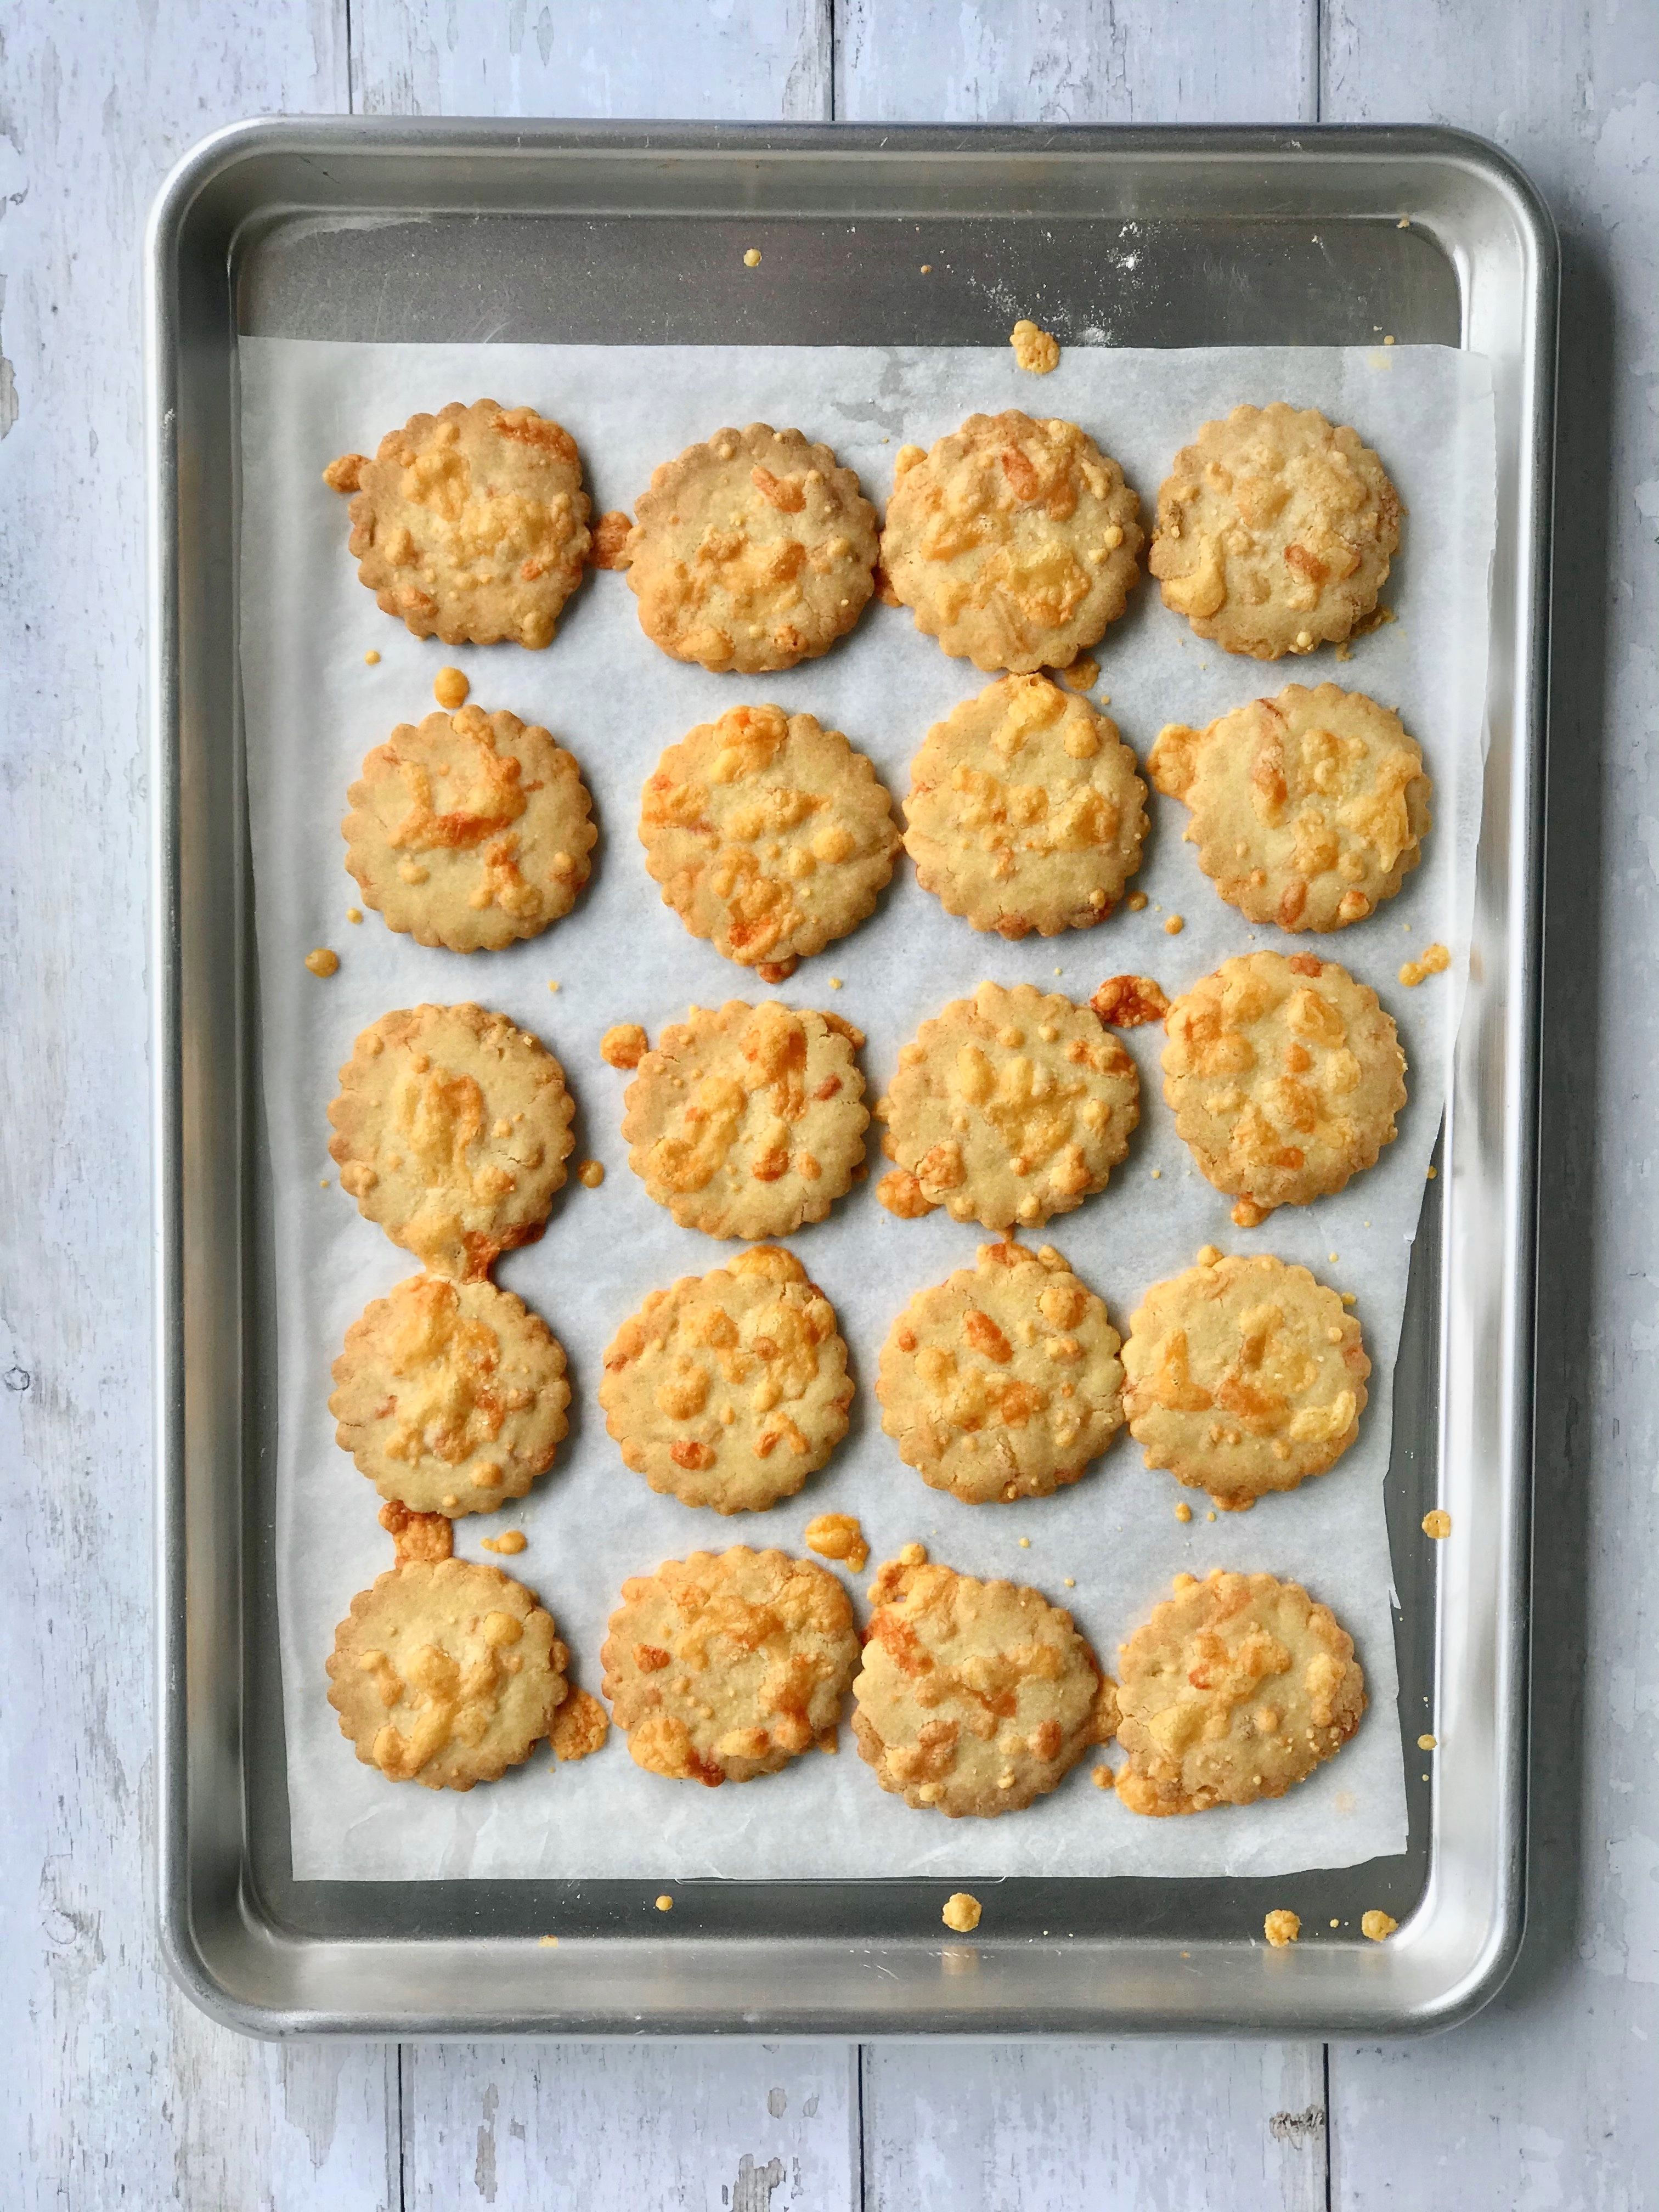 How To Make Cheese Biscuits Savoury Biscuit Recipes